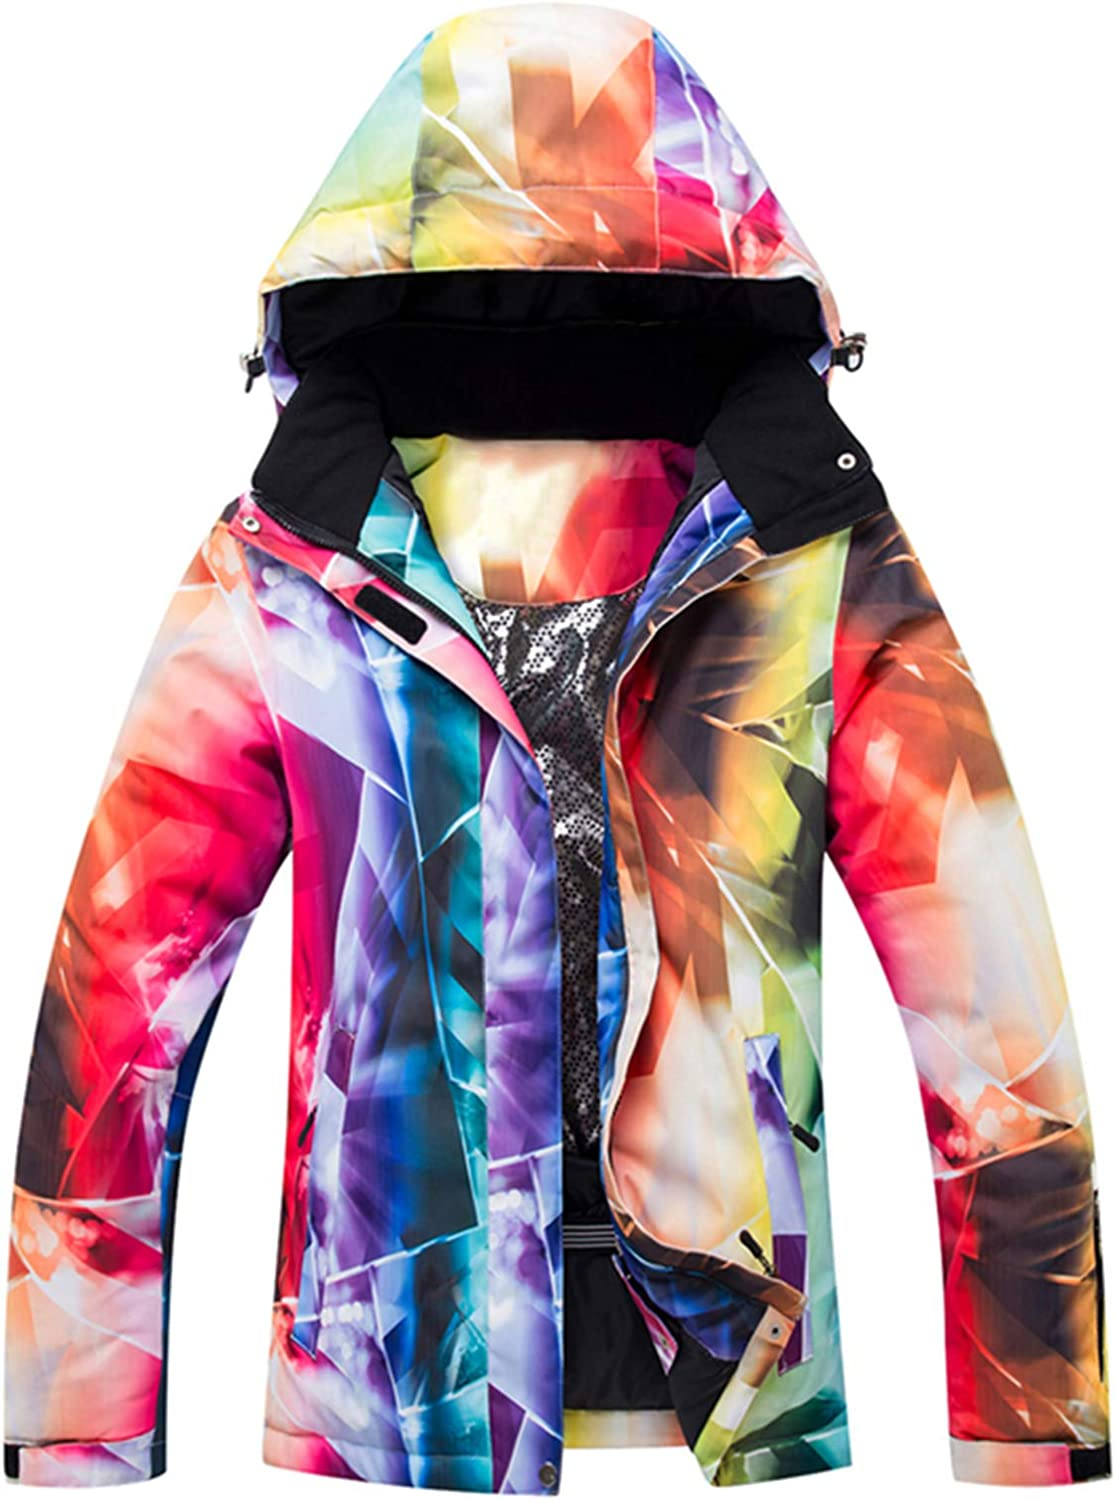 Ski Suit Women's Snowboard Jacket Windproof Waterproof And Warm Thick Coat Casual Fashion Wide-waisted Clothes